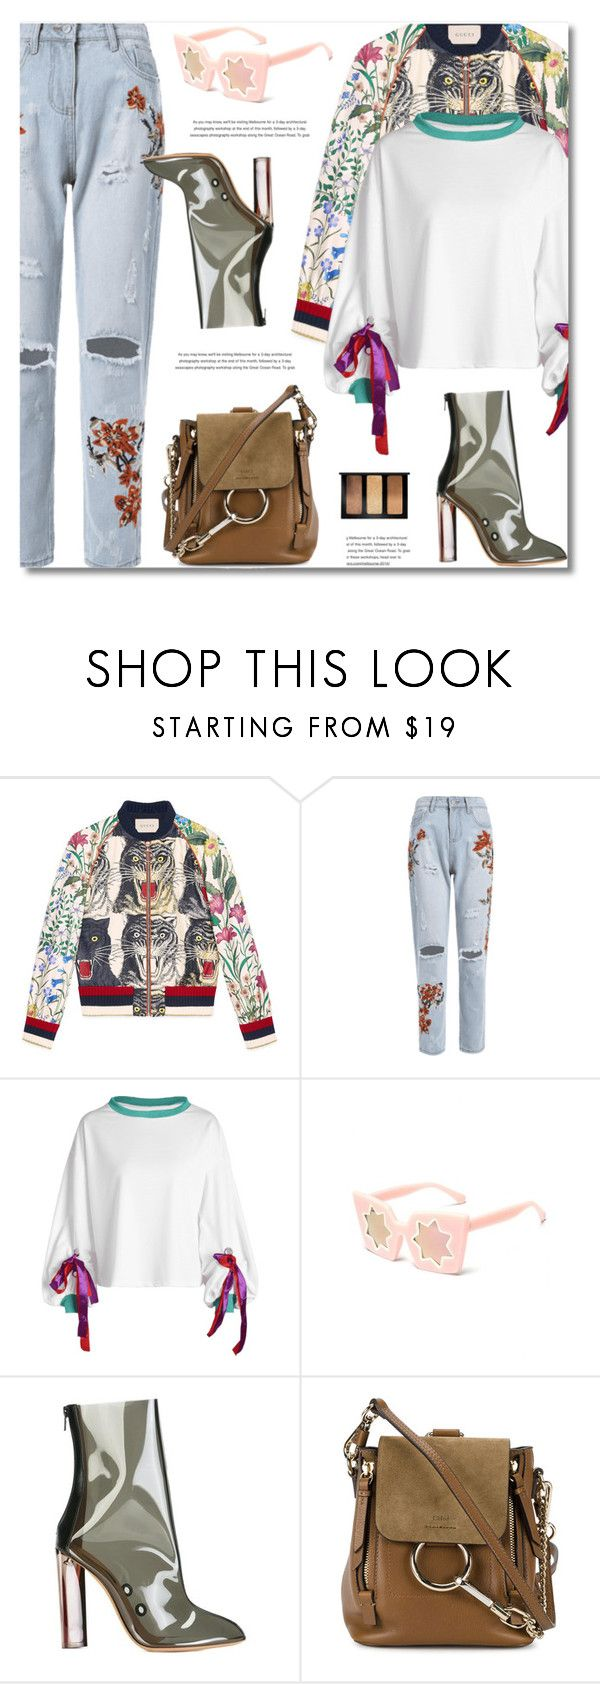 """""""Street Style"""" by defivirda ❤ liked on Polyvore featuring Gucci, Yeezy by Kanye West, Chloé, Bobbi Brown Cosmetics, StreetStyle, streetfashion, polyvoreeditorial and StreetChic"""